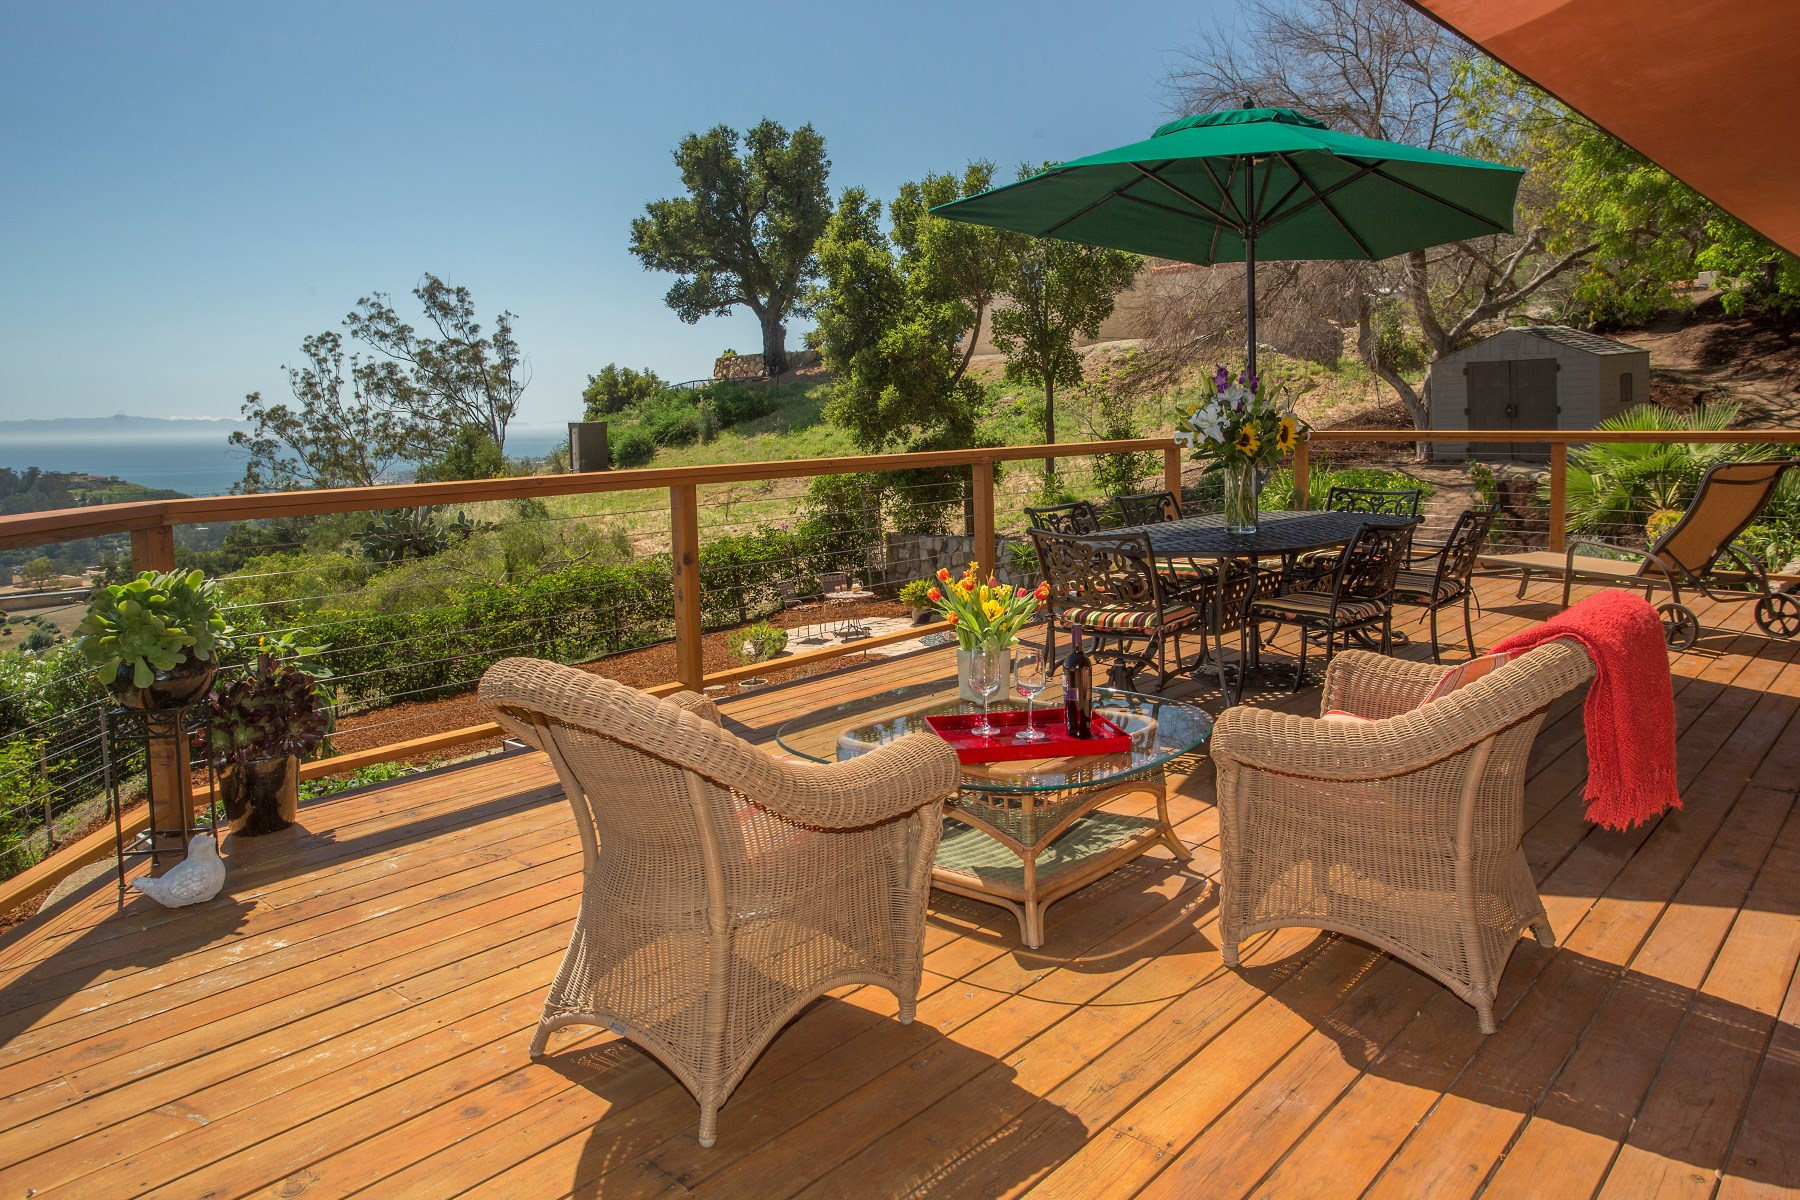 Single Family Home for Sale at Montecito Ocean Views 12 West Mountain Drive Montecito - Upper Village, Montecito, California 93108 United States